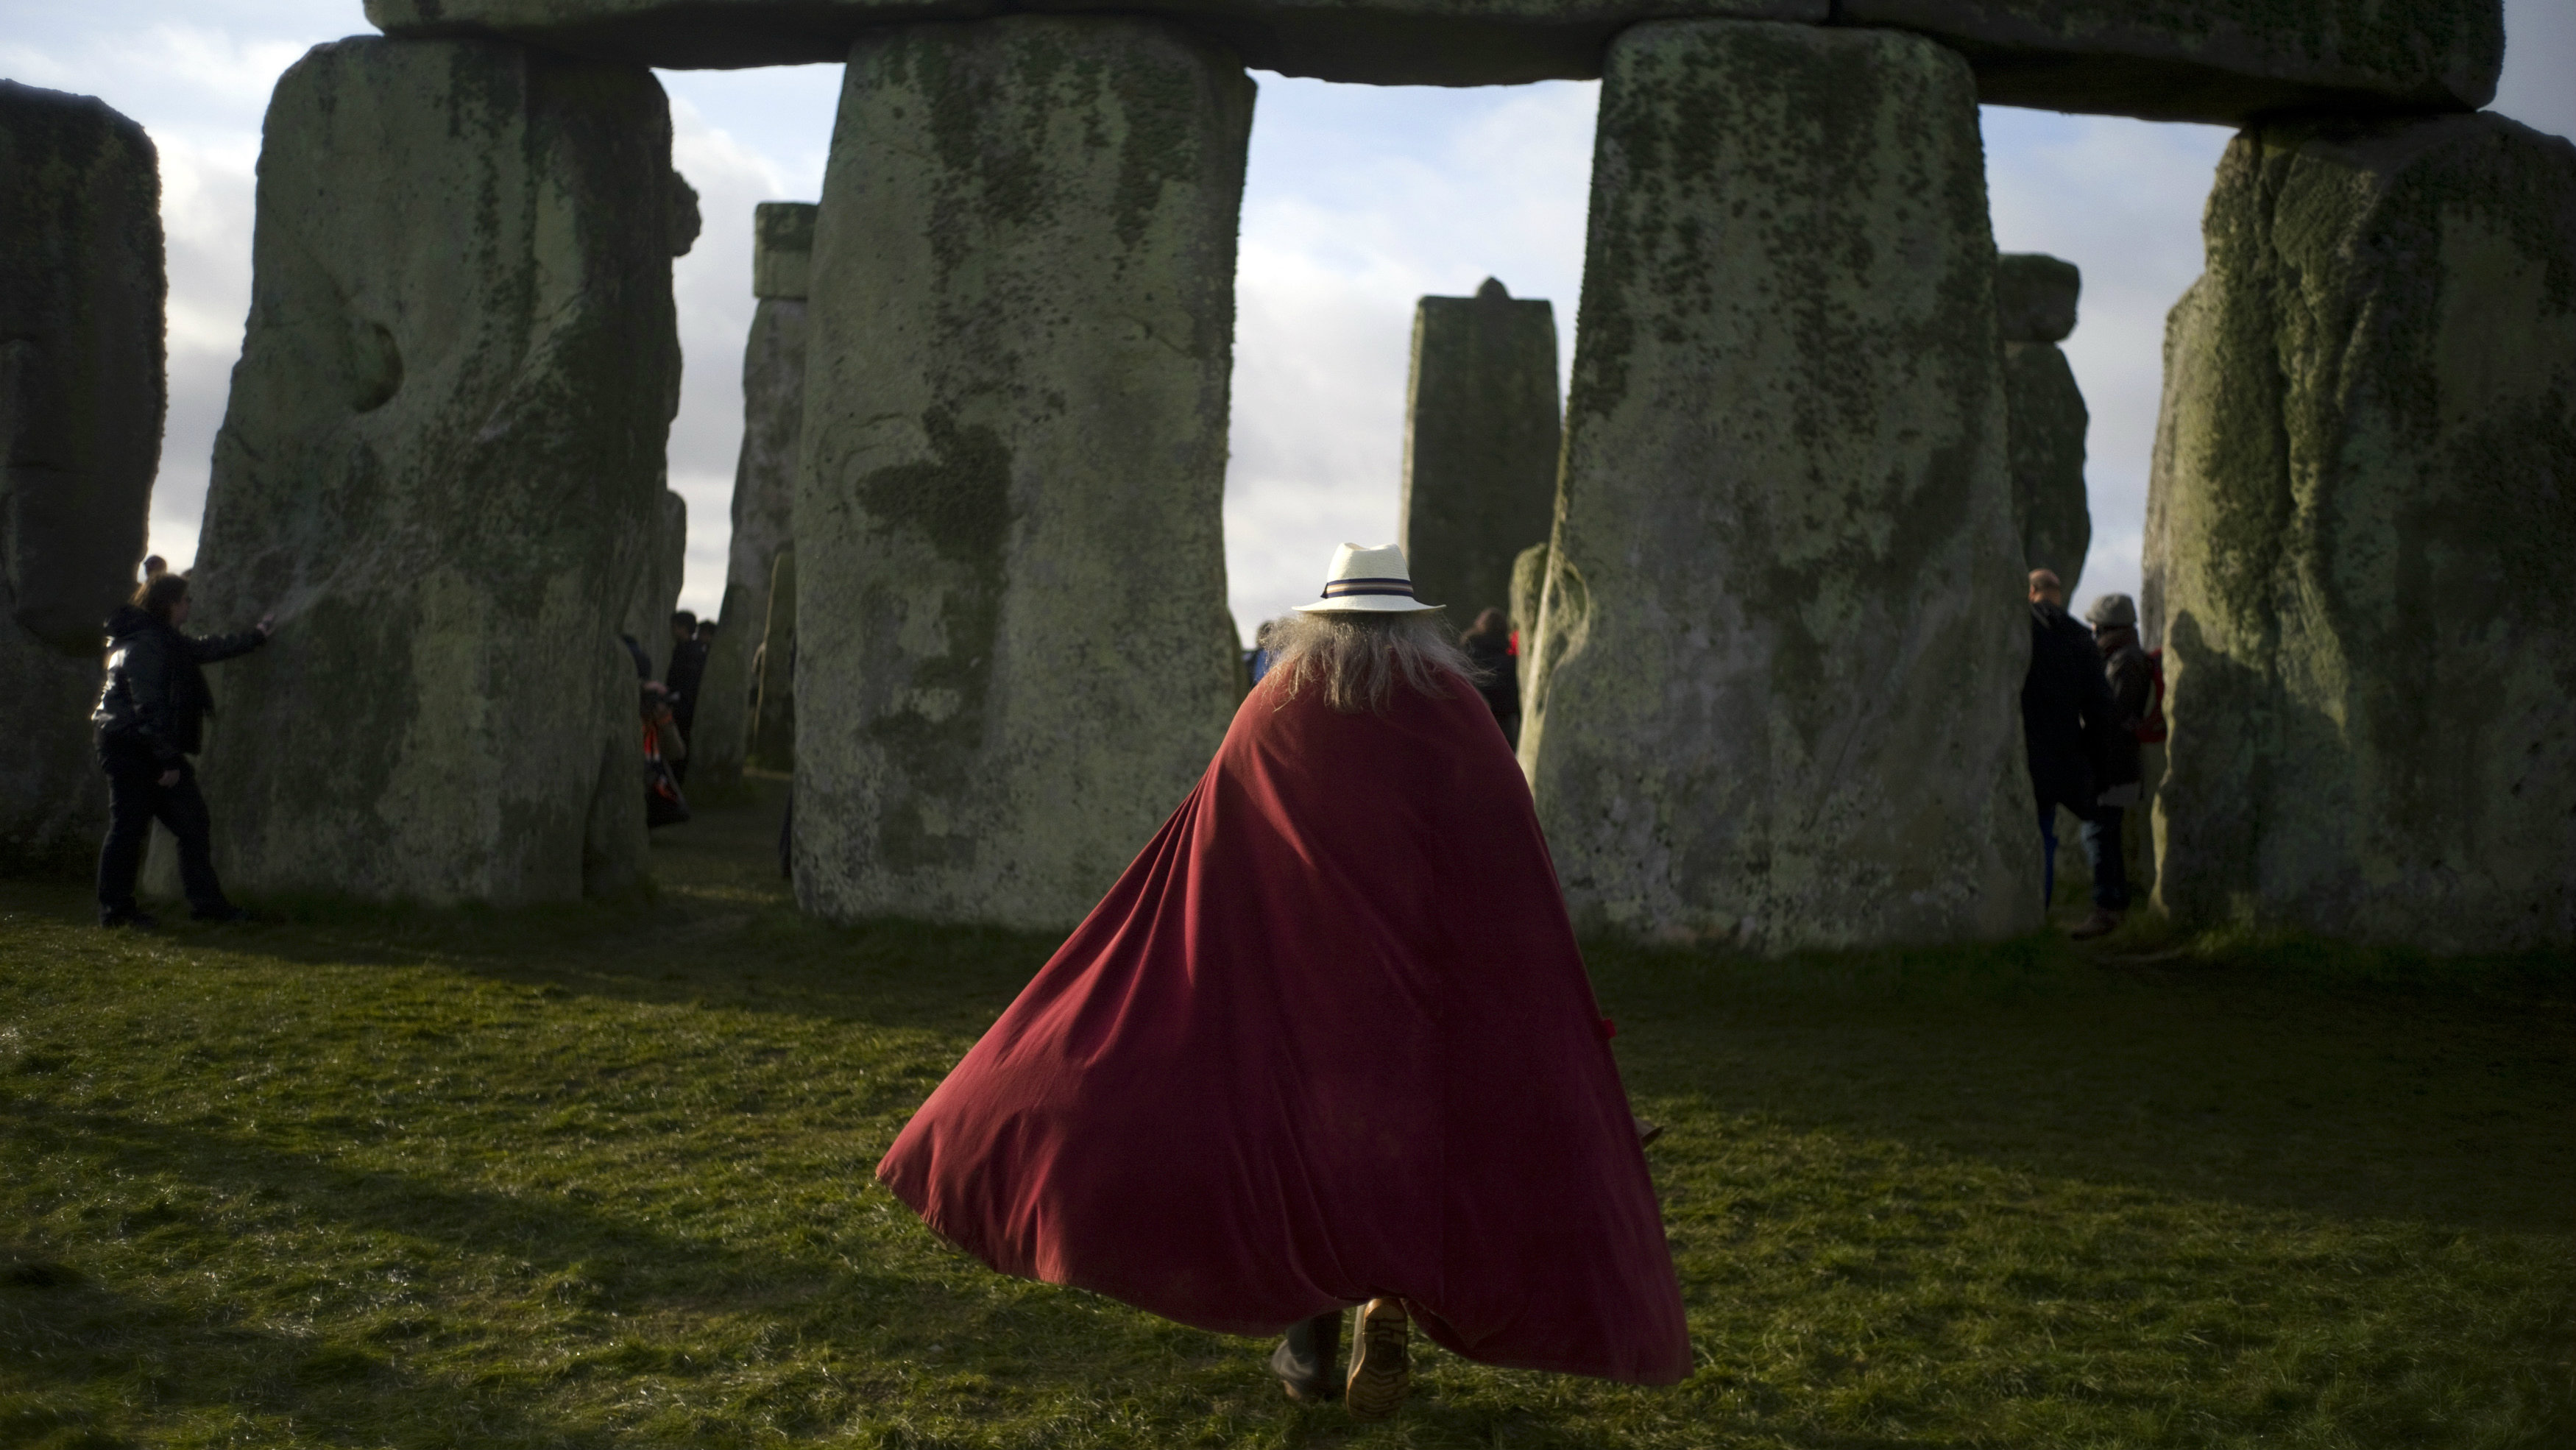 A brief history of the Ancient Britonians exposes our colonialist attitudes